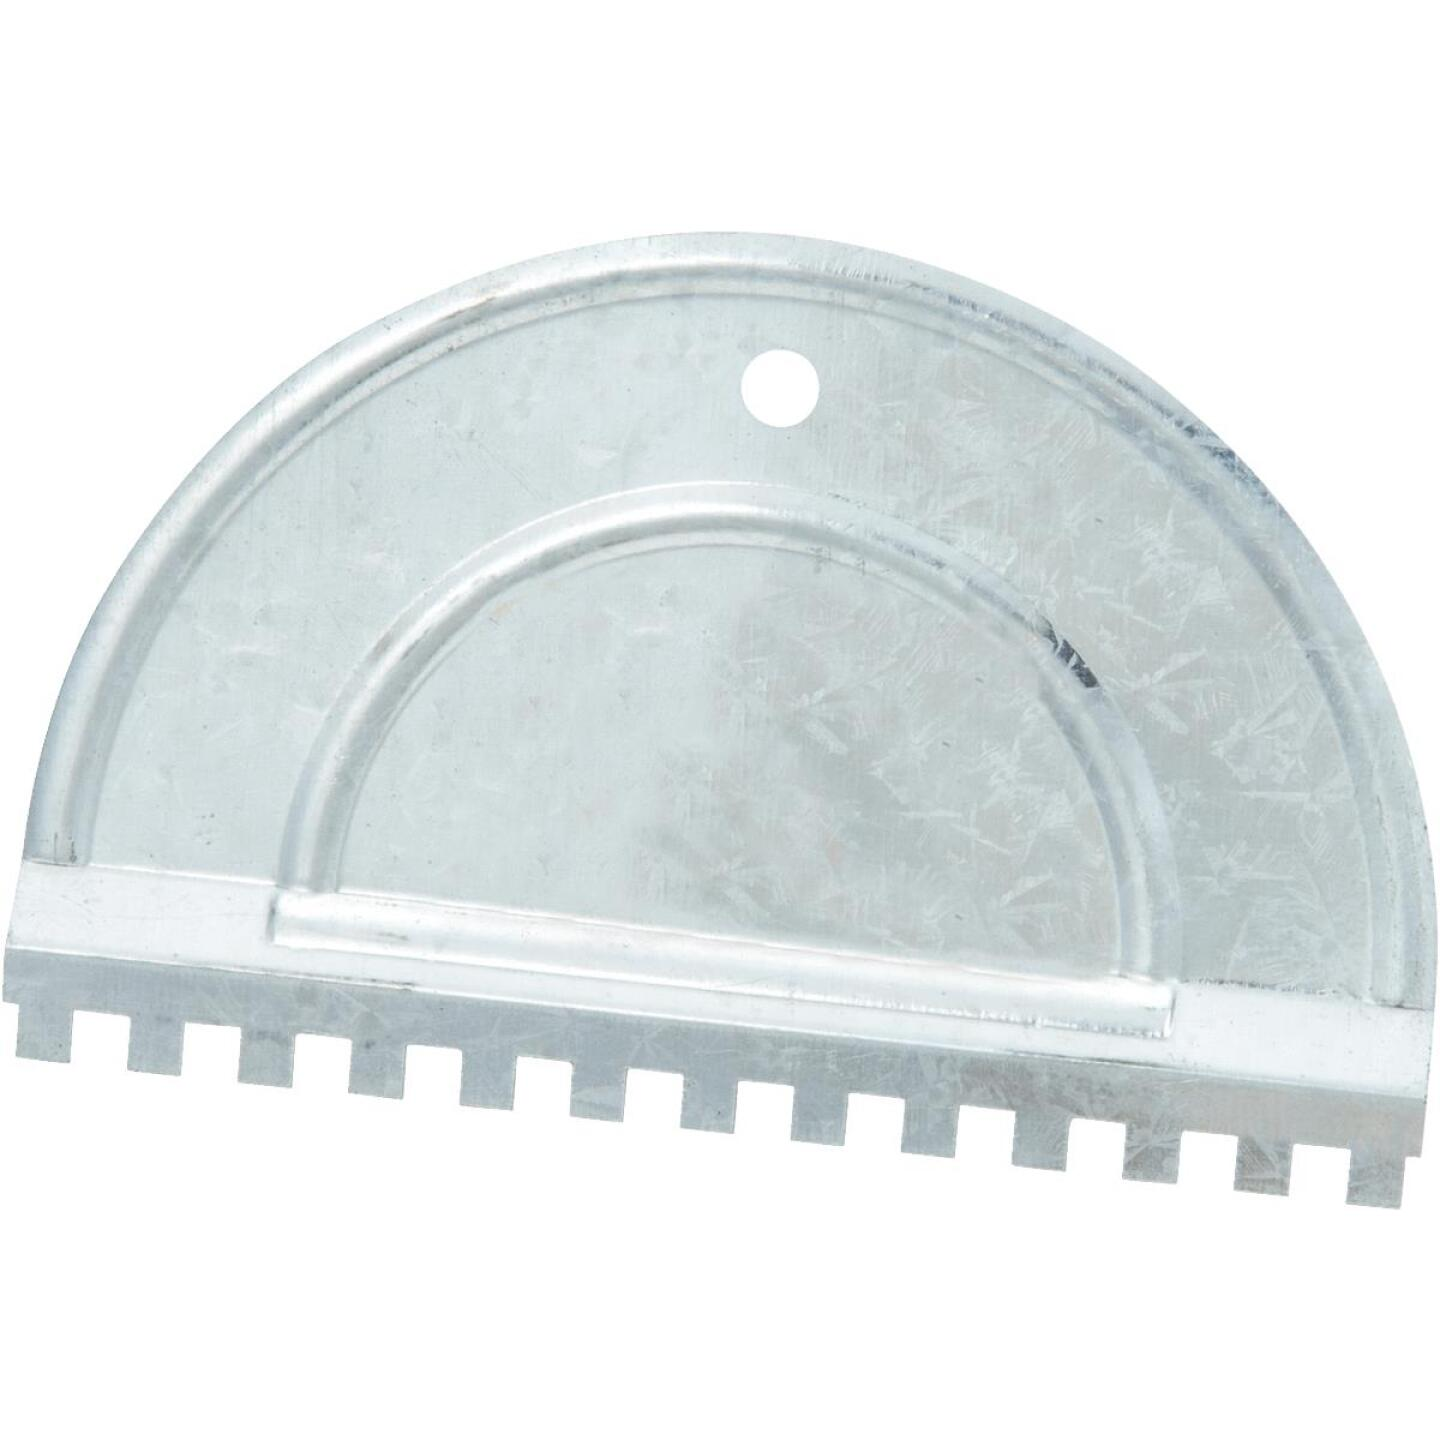 Do it 1/4 In. Square-Notch Half Moon Adhesive Spreader Image 1